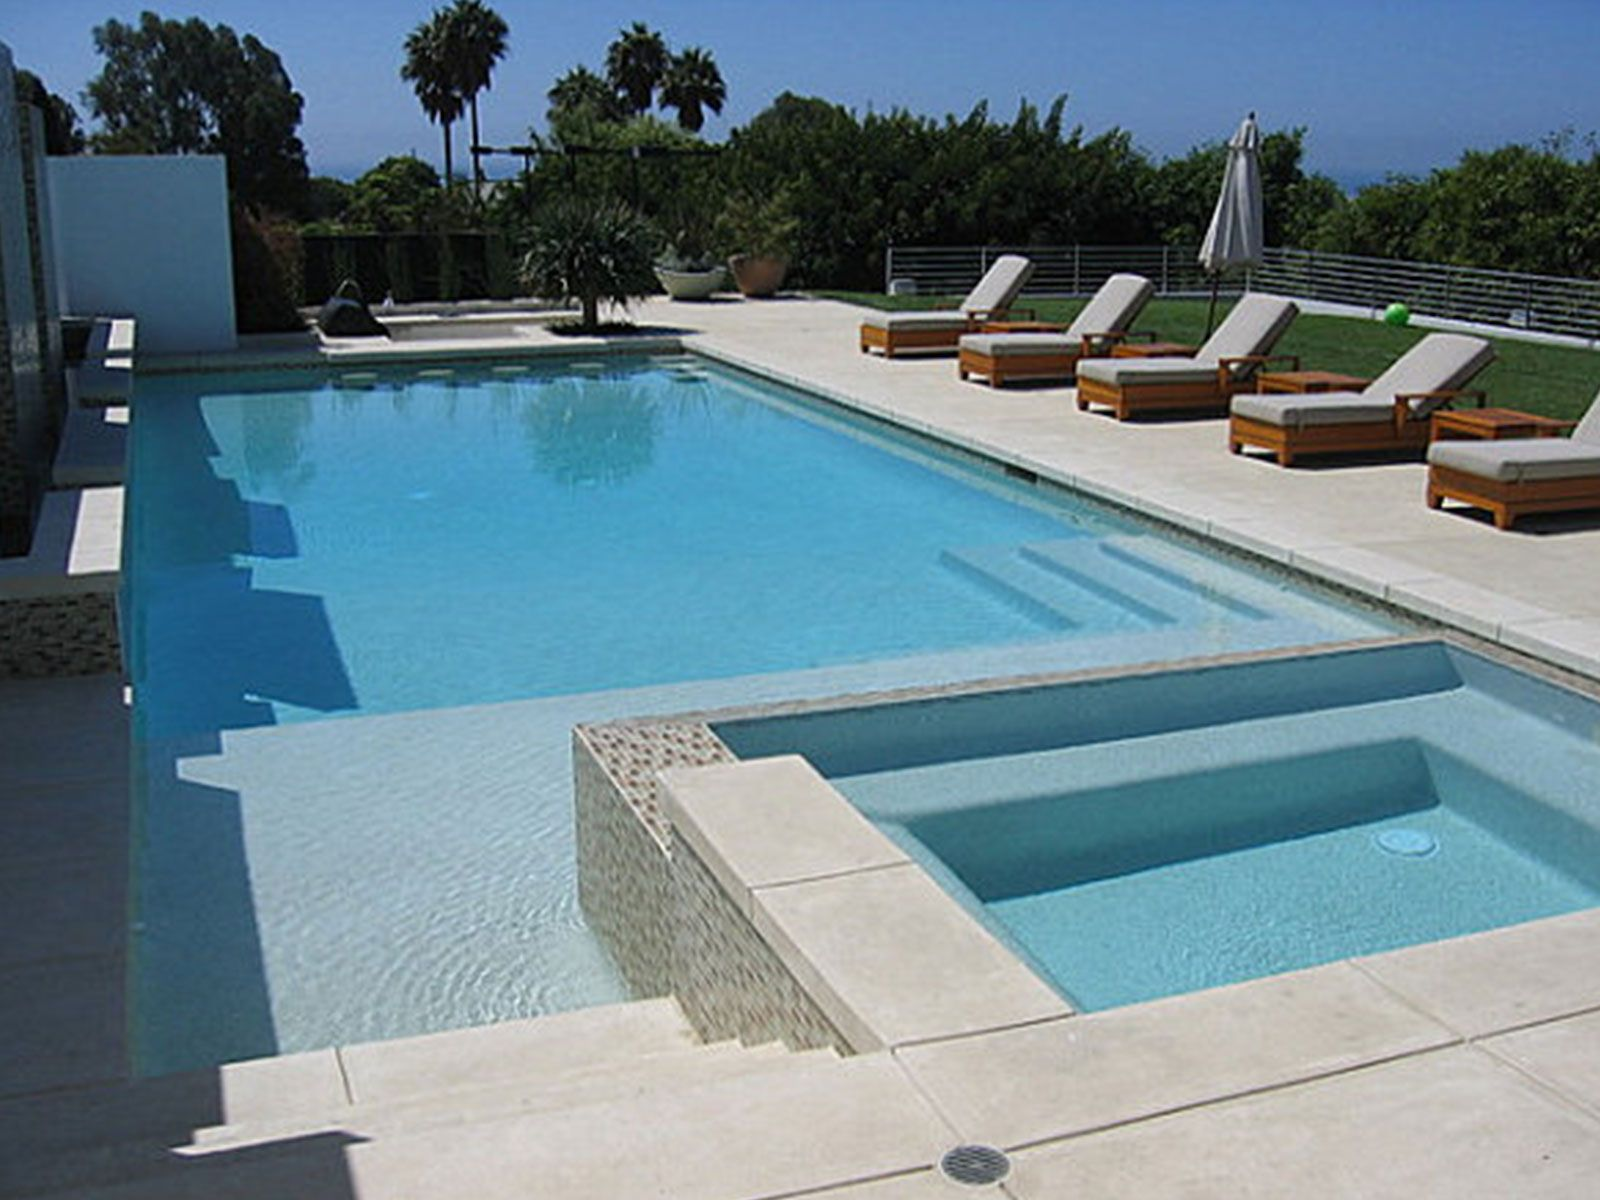 Simple swimming pool design image modern creative swimming for Best backyard pool designs